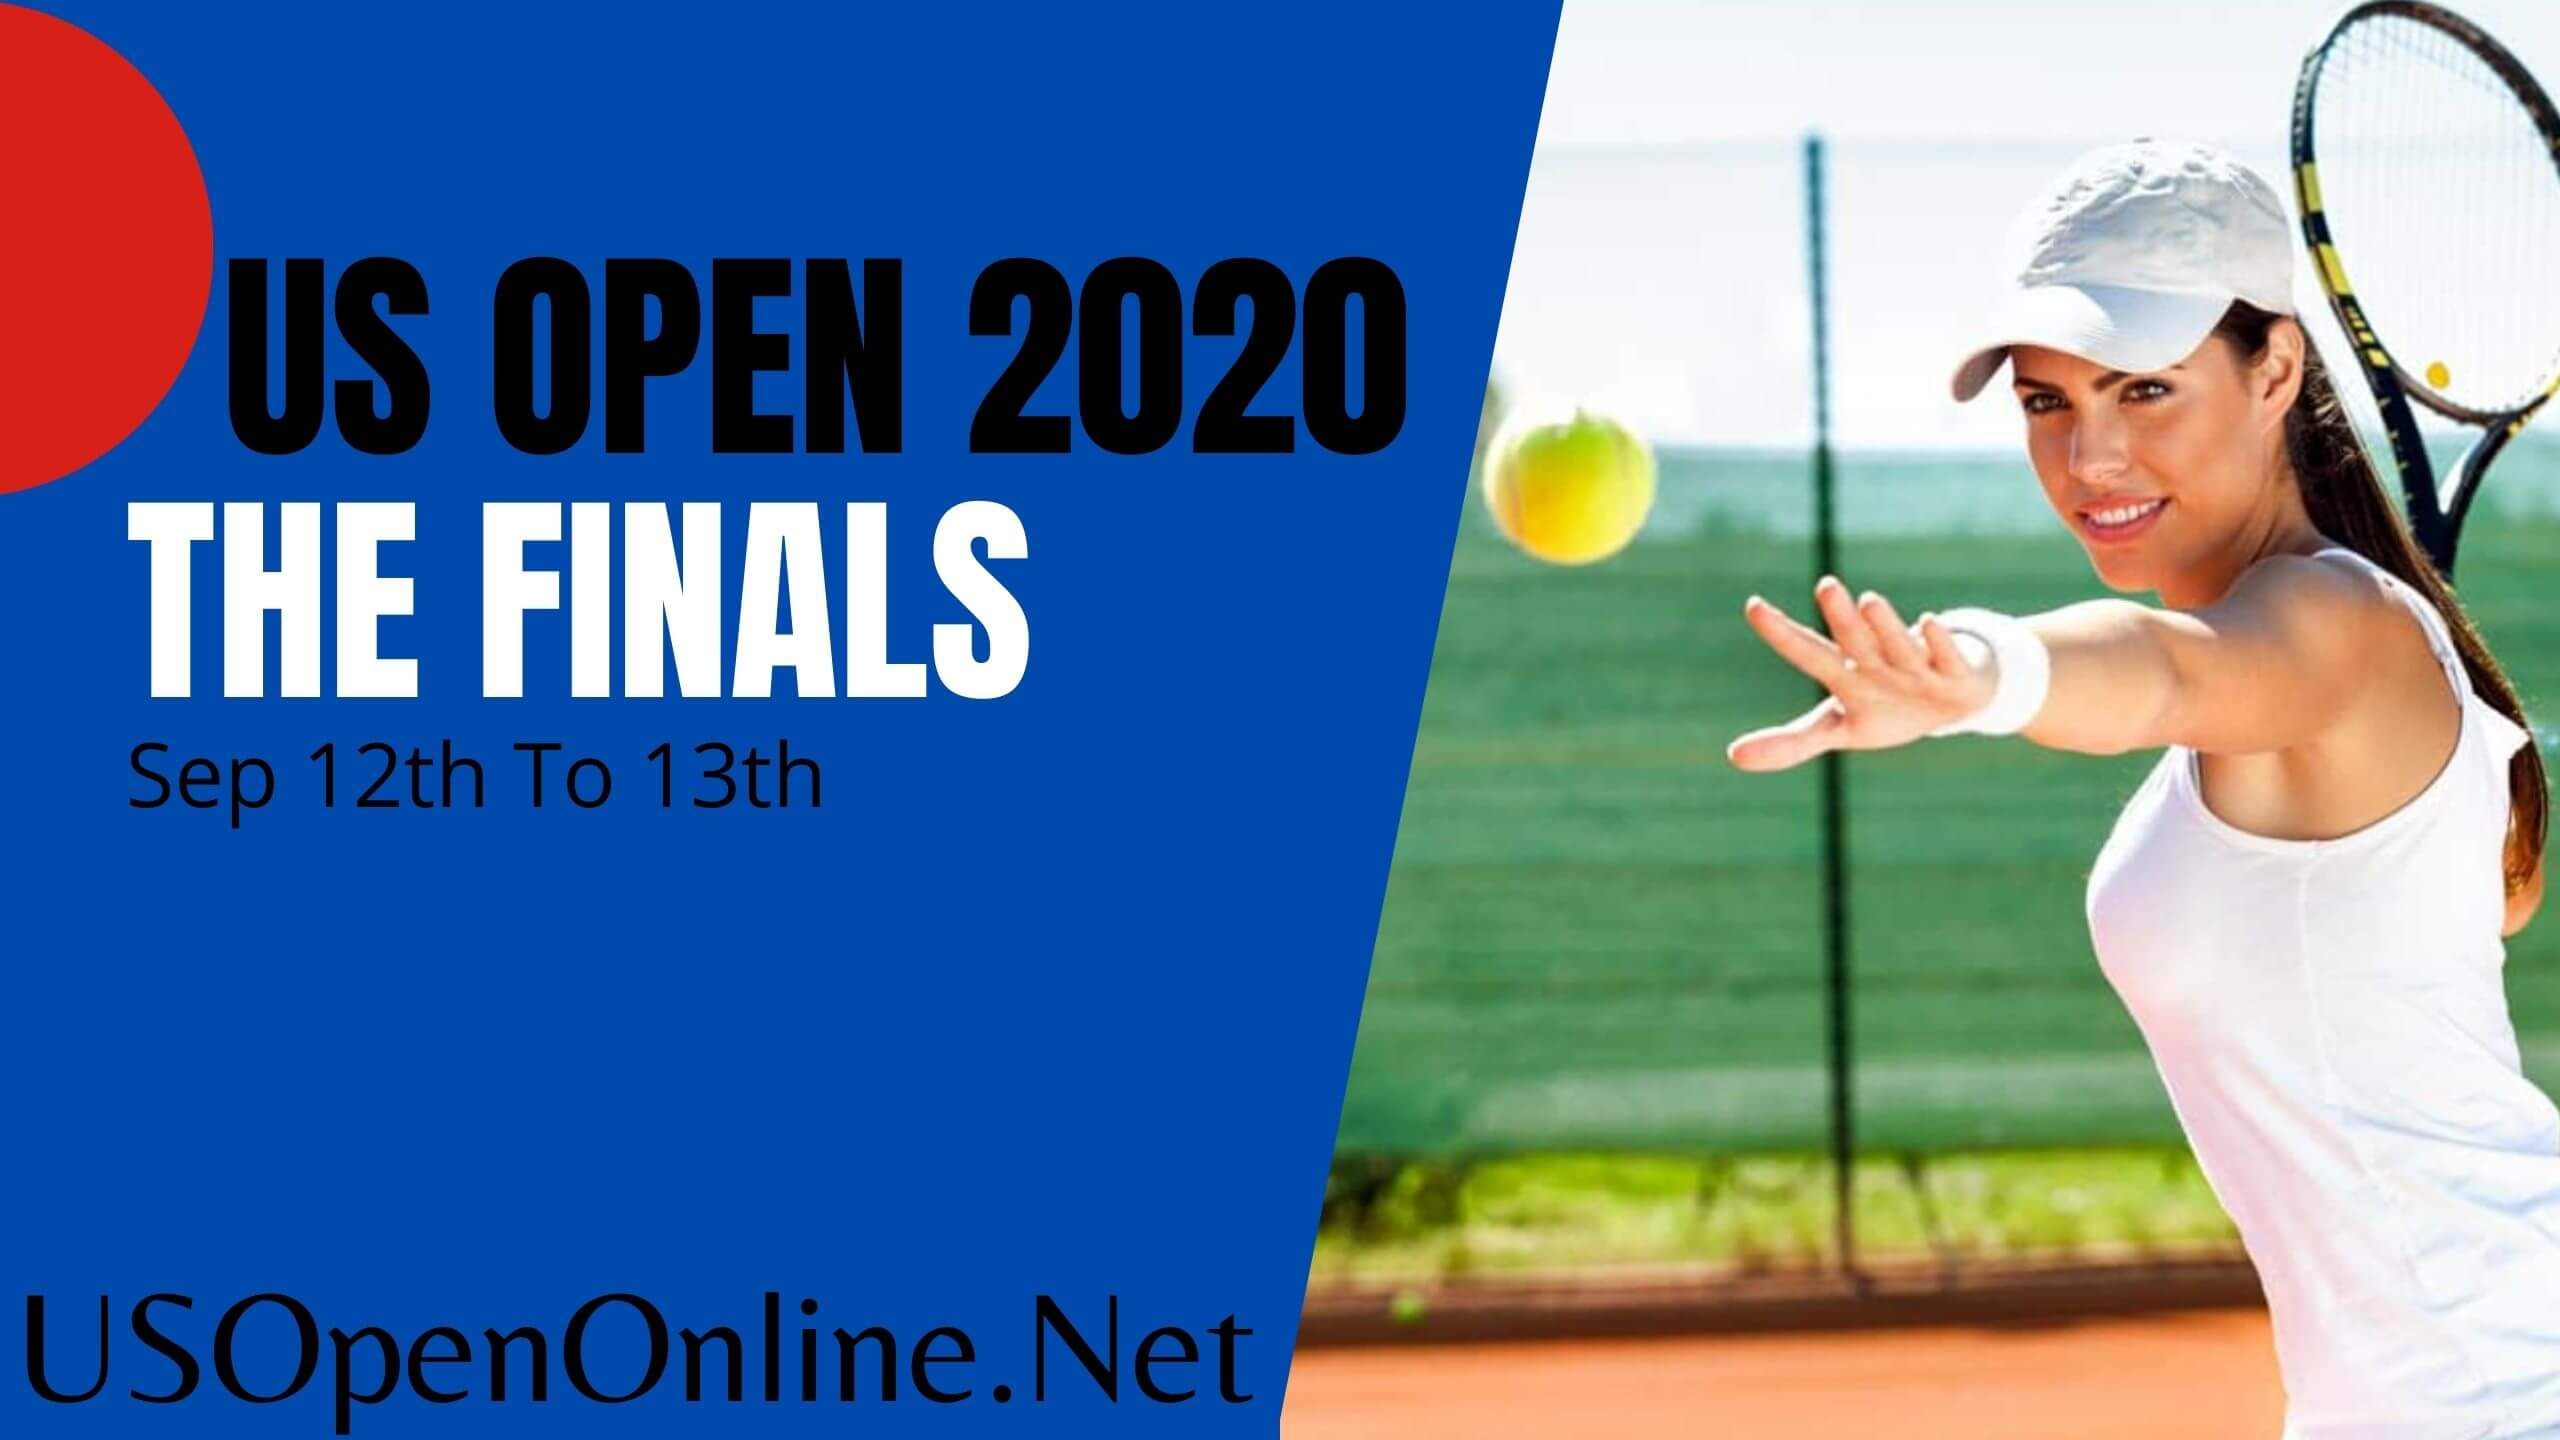 2018 US Open Tennis Finals Live Online